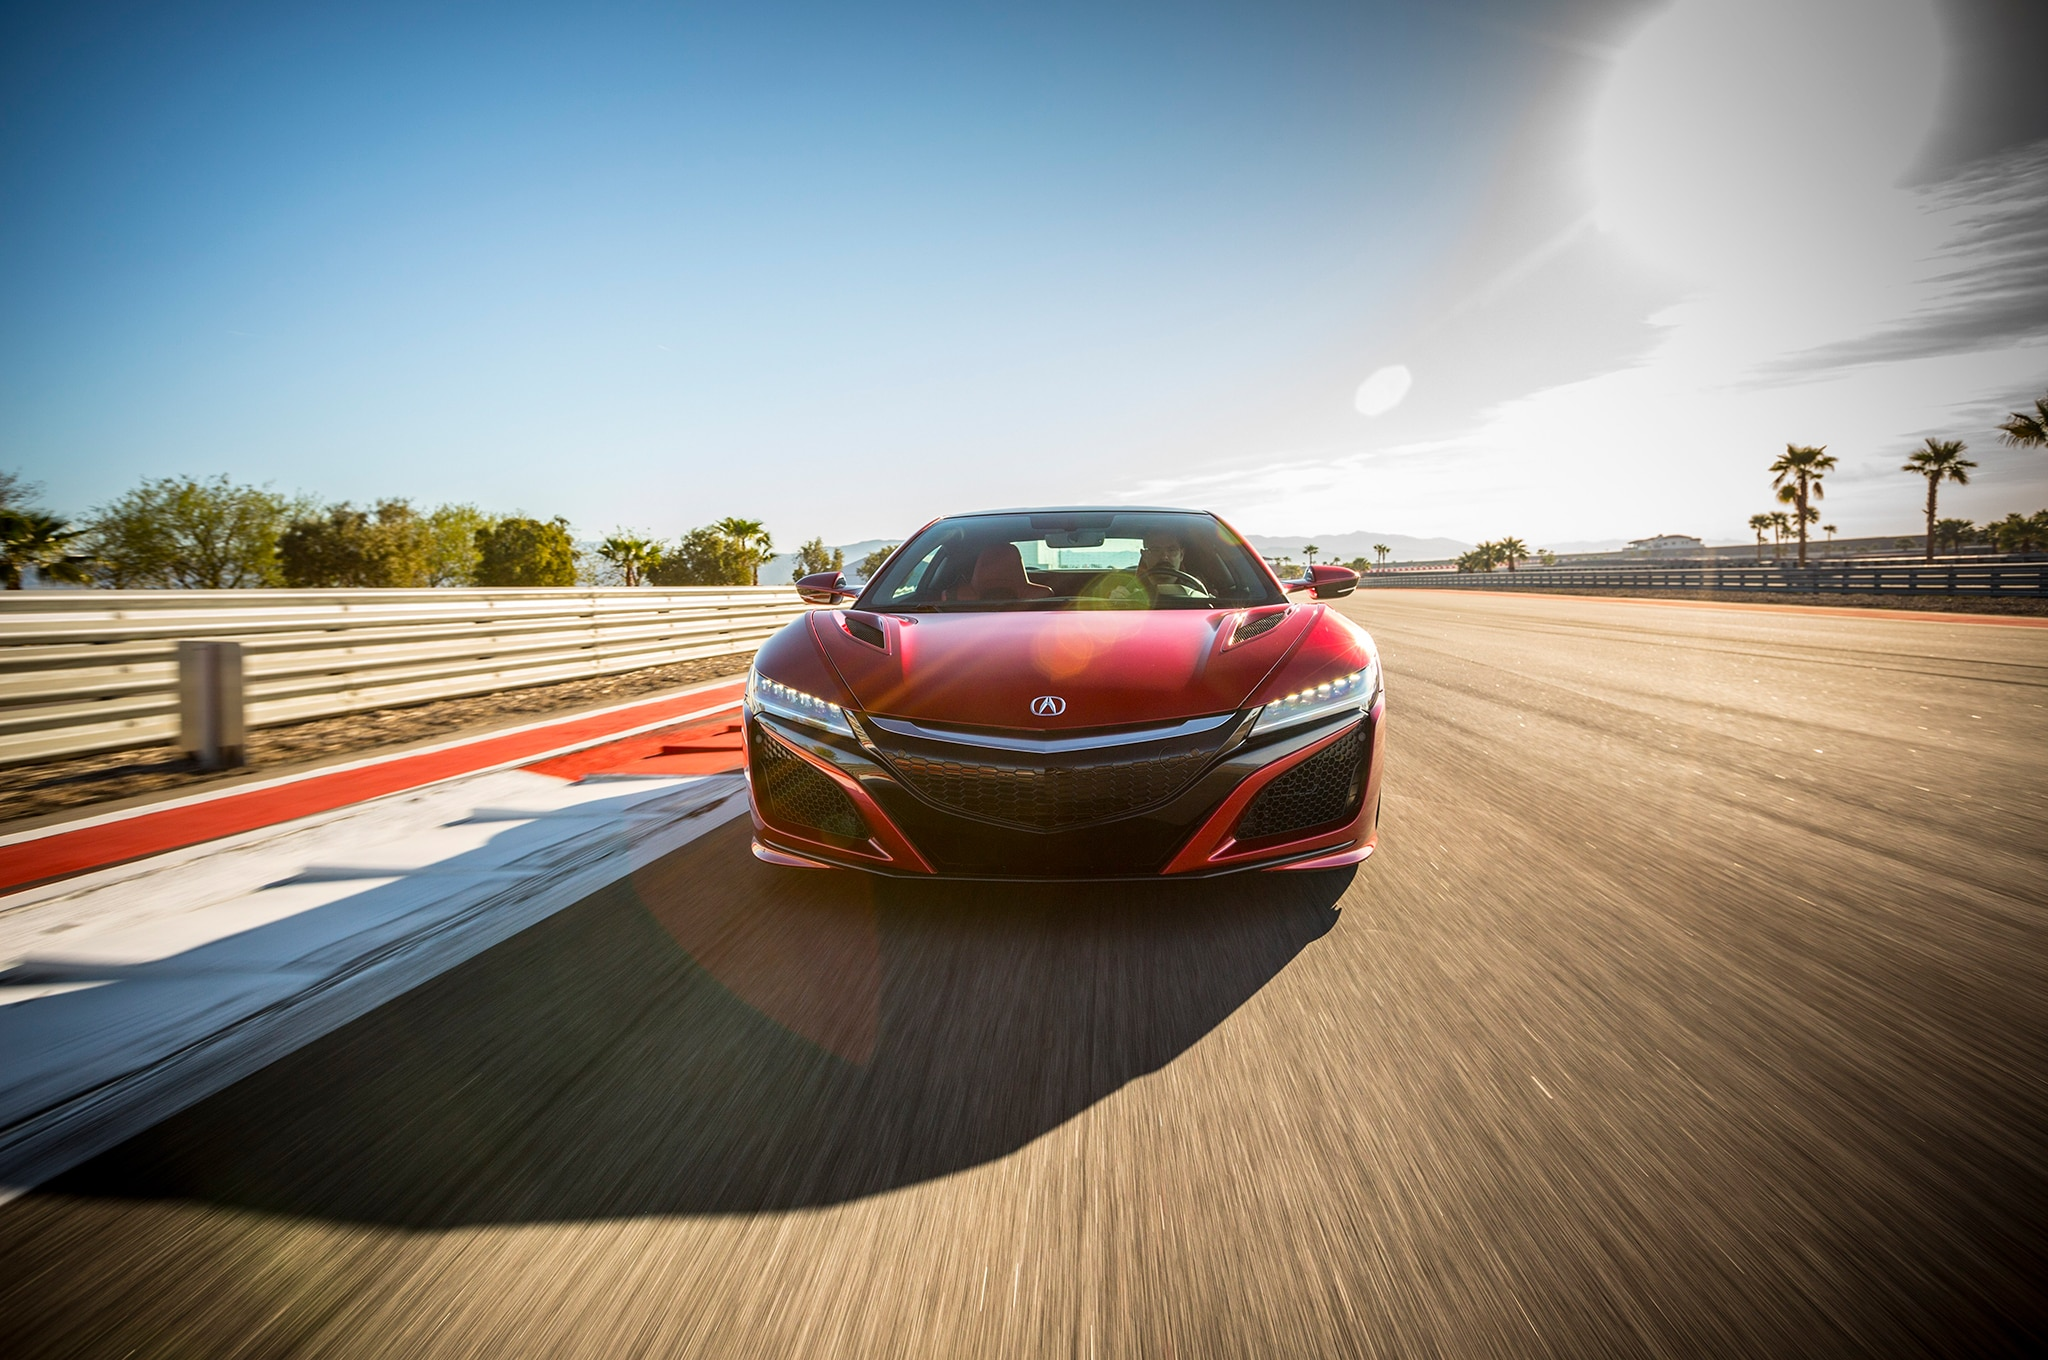 Acura Nsx Dream Project Rolling Into Sema With 610